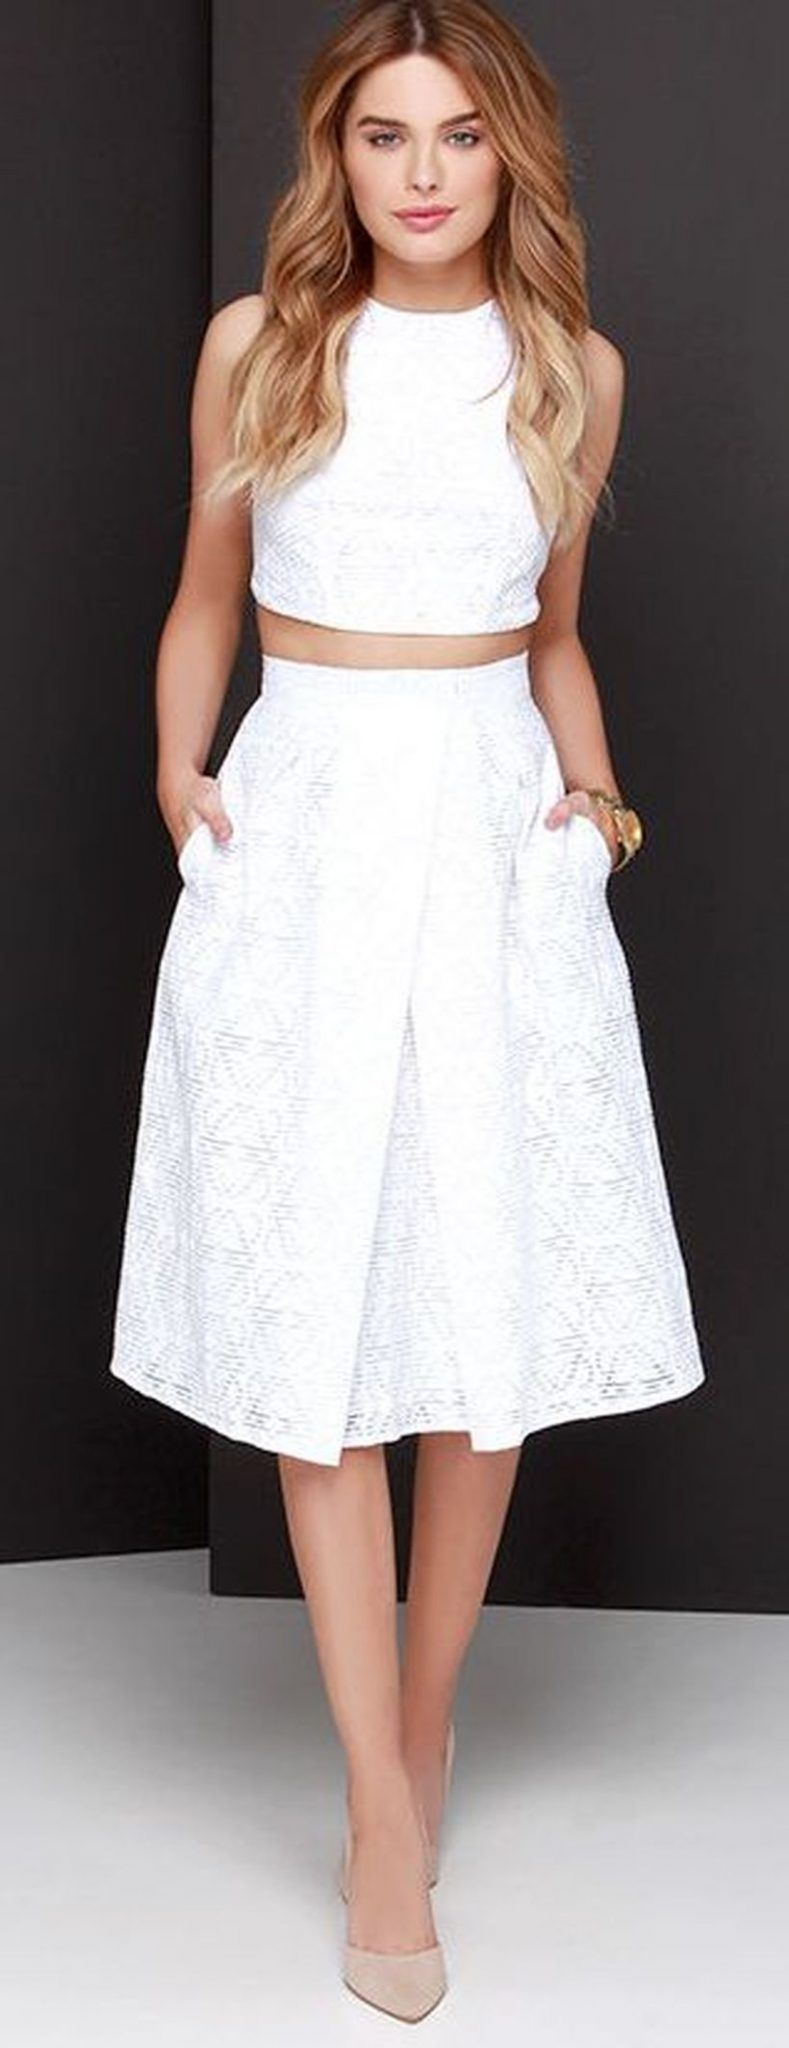 70 Gorgeous White Two Piece Outfits Ideas Fasbest